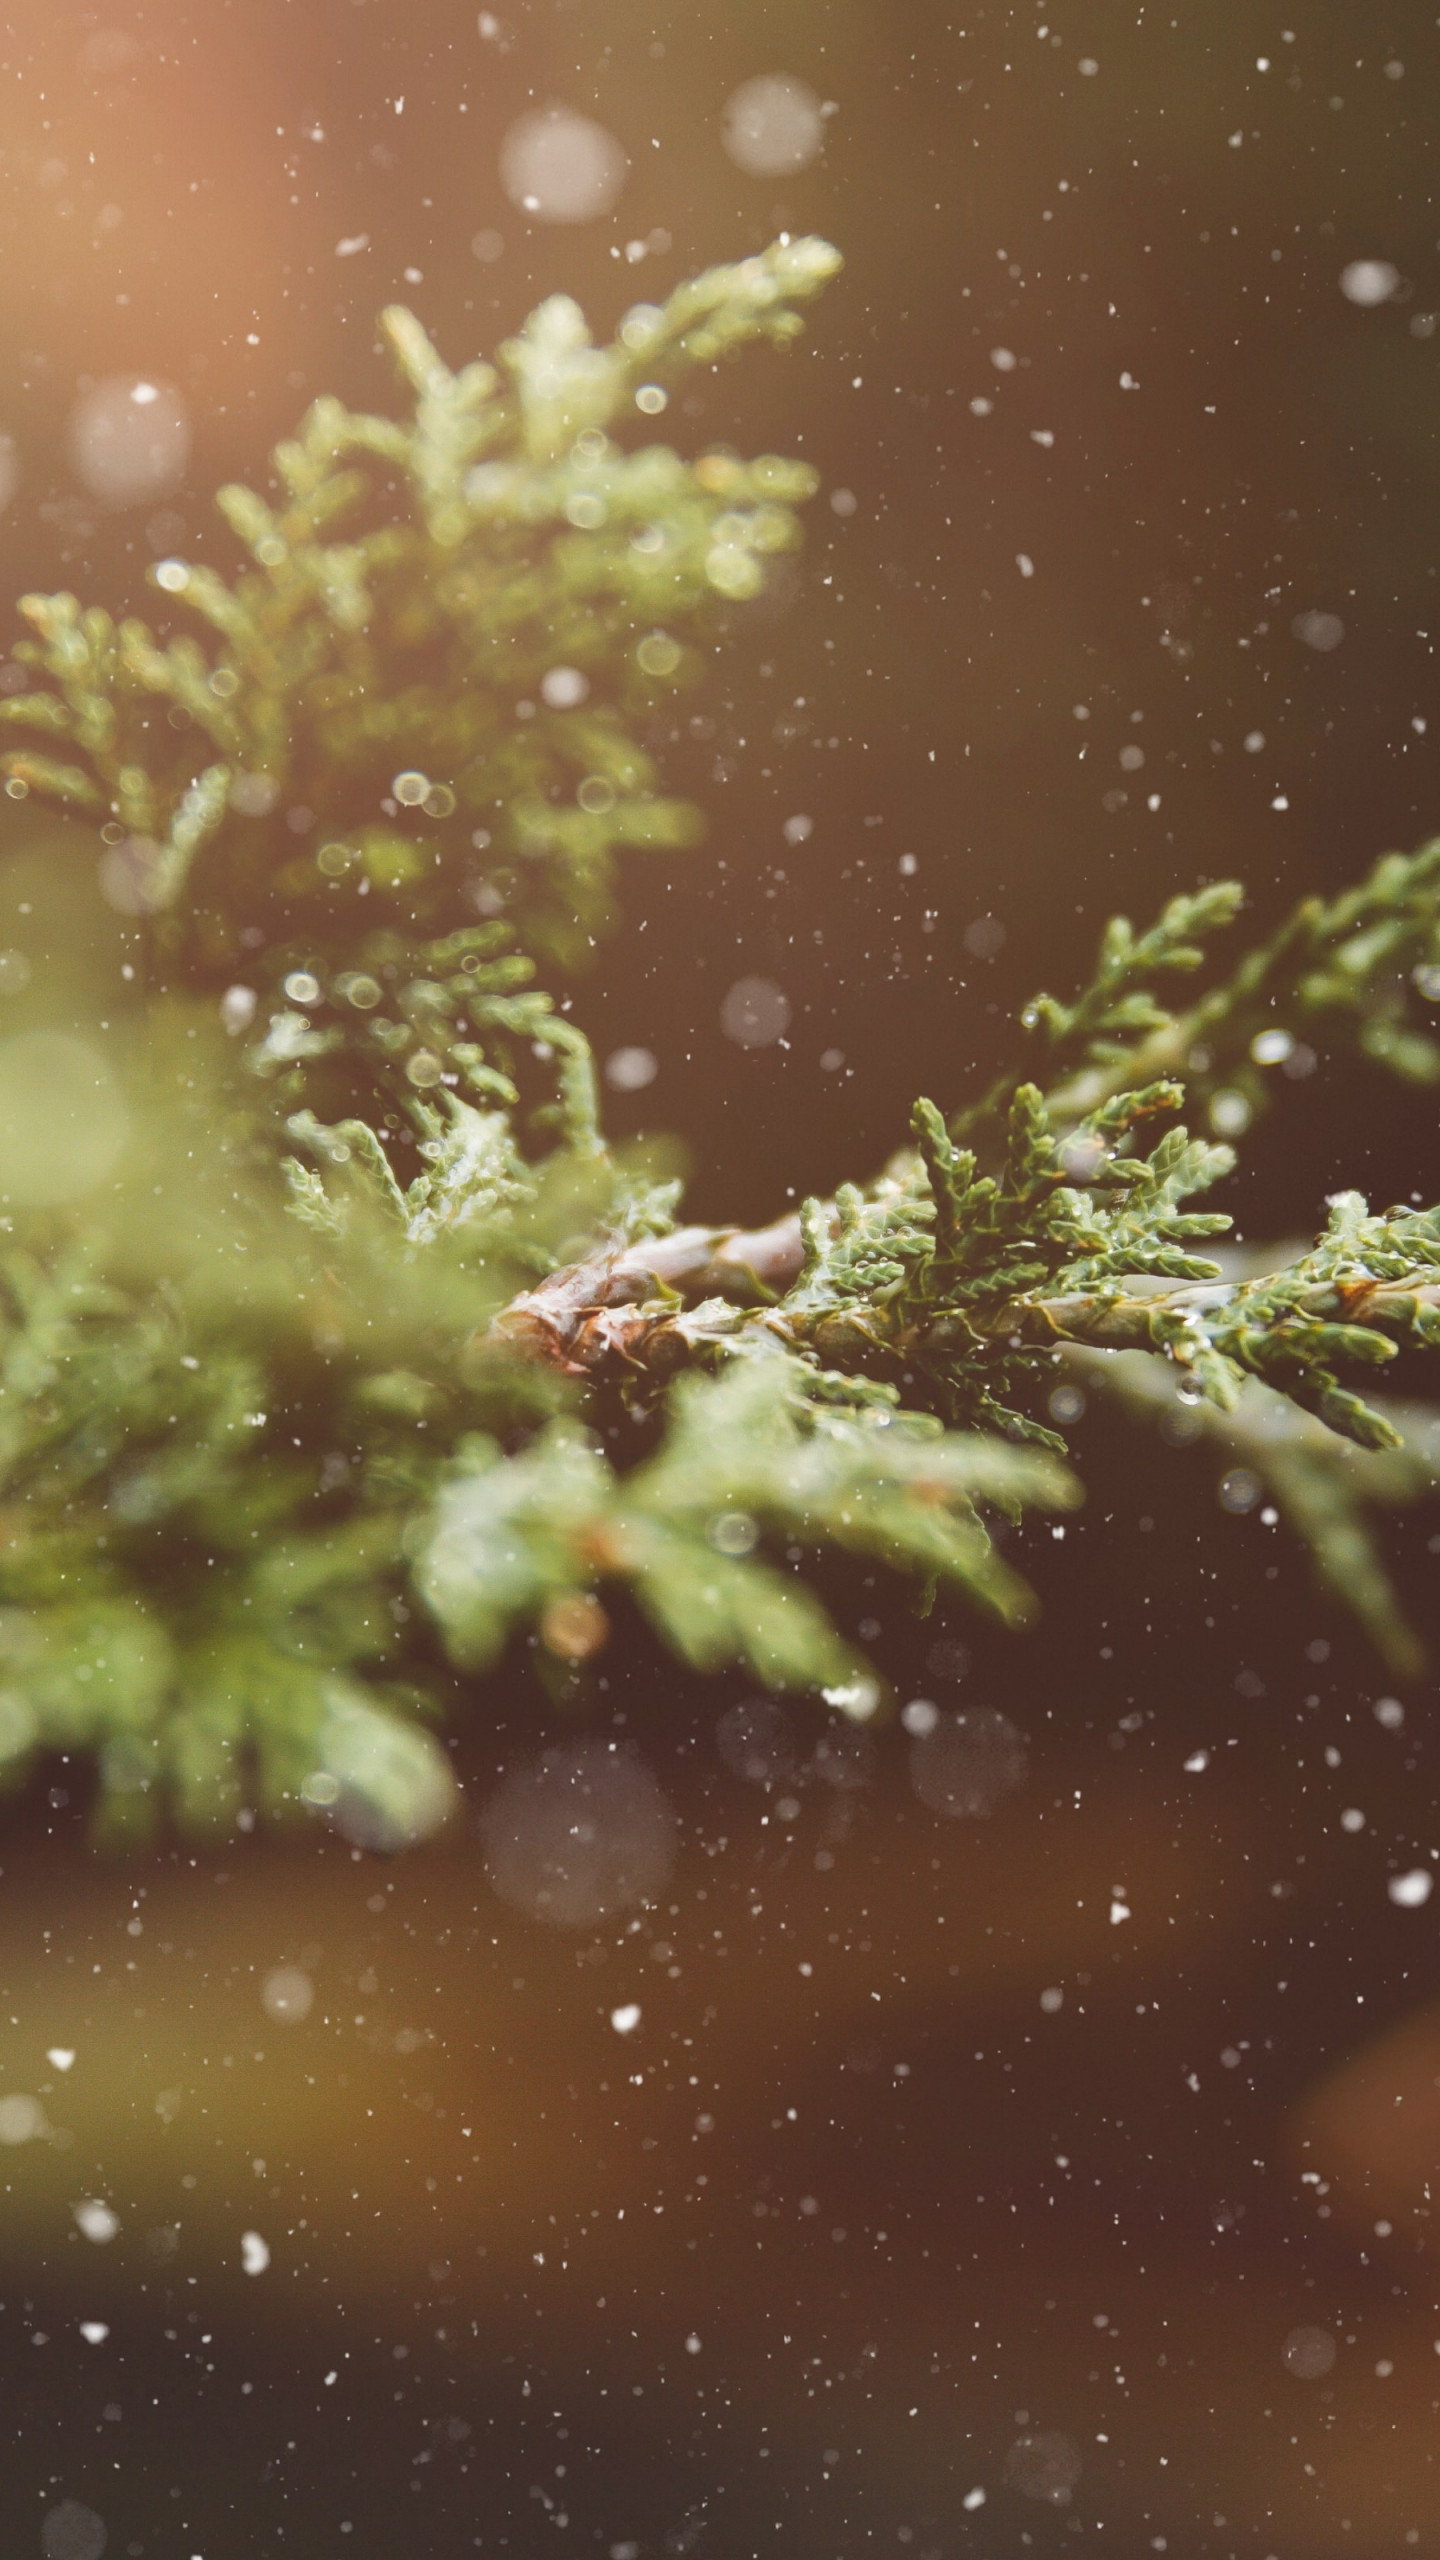 Snowflakes over the pine branch wallpaper 1440x2560